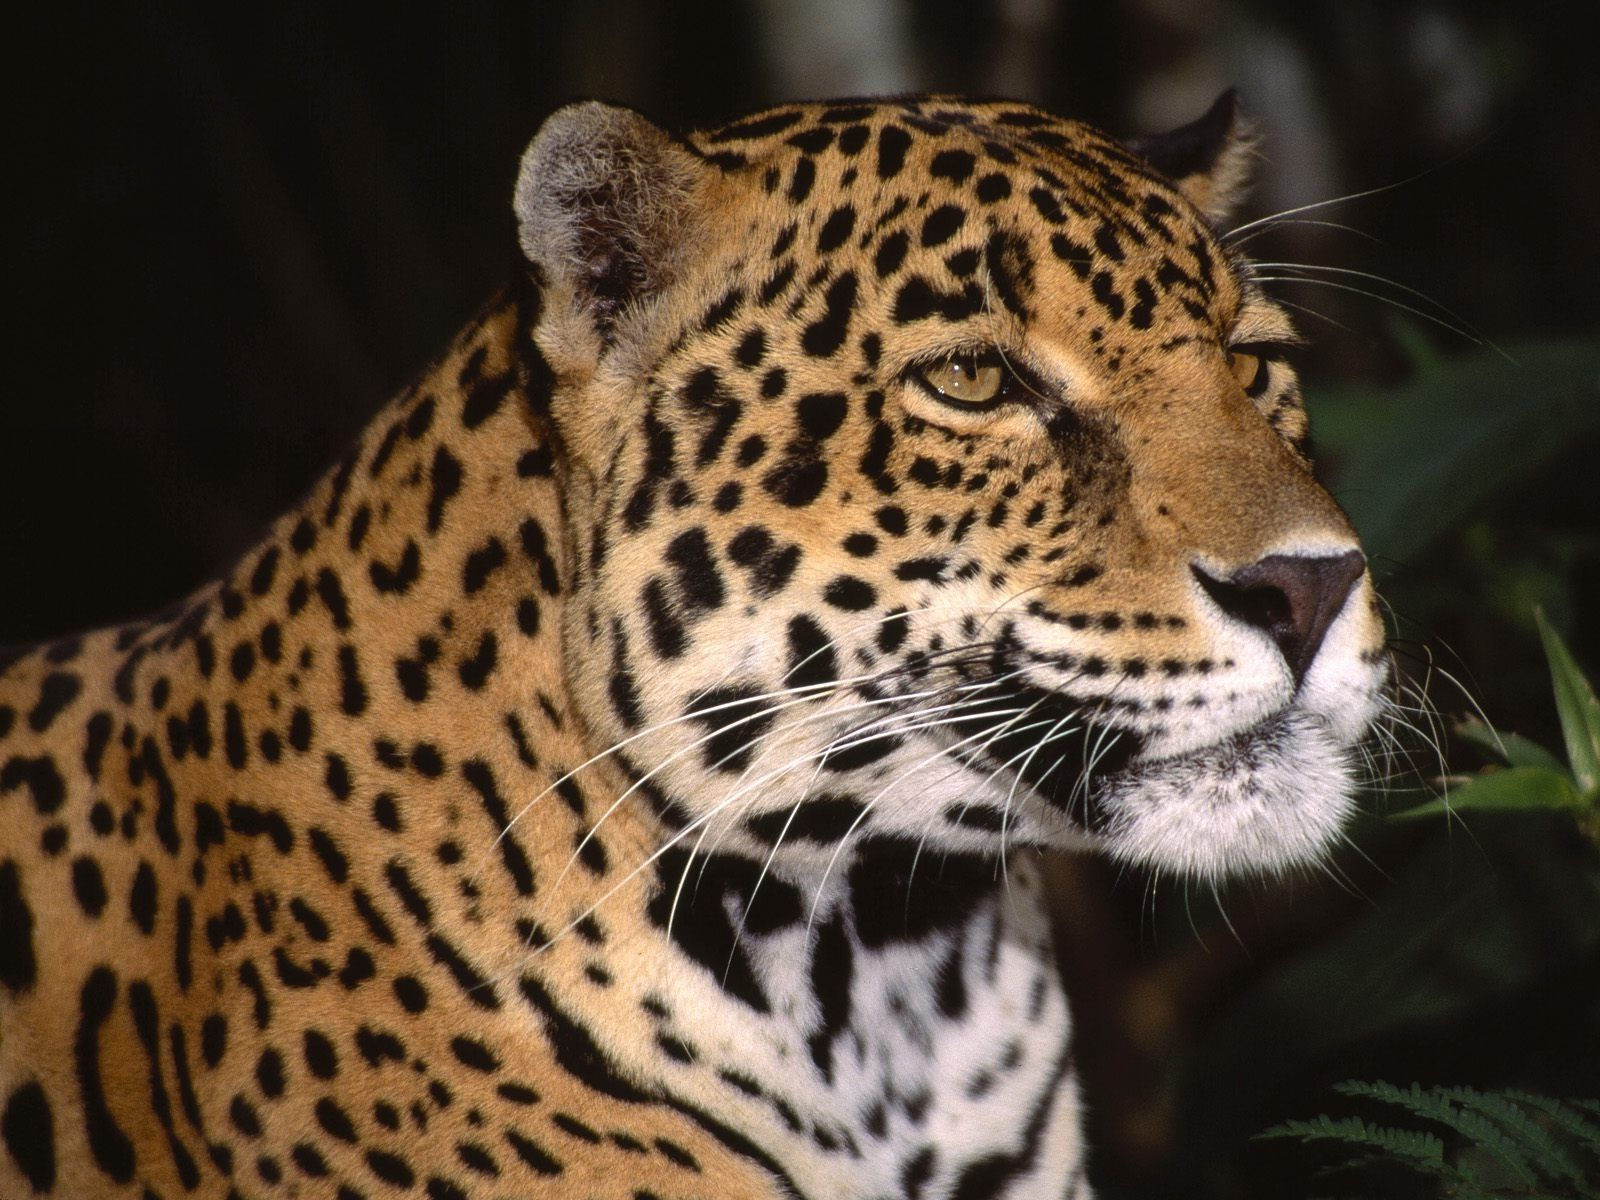 The Indian leopard (Panthera pardus fusca) is widely